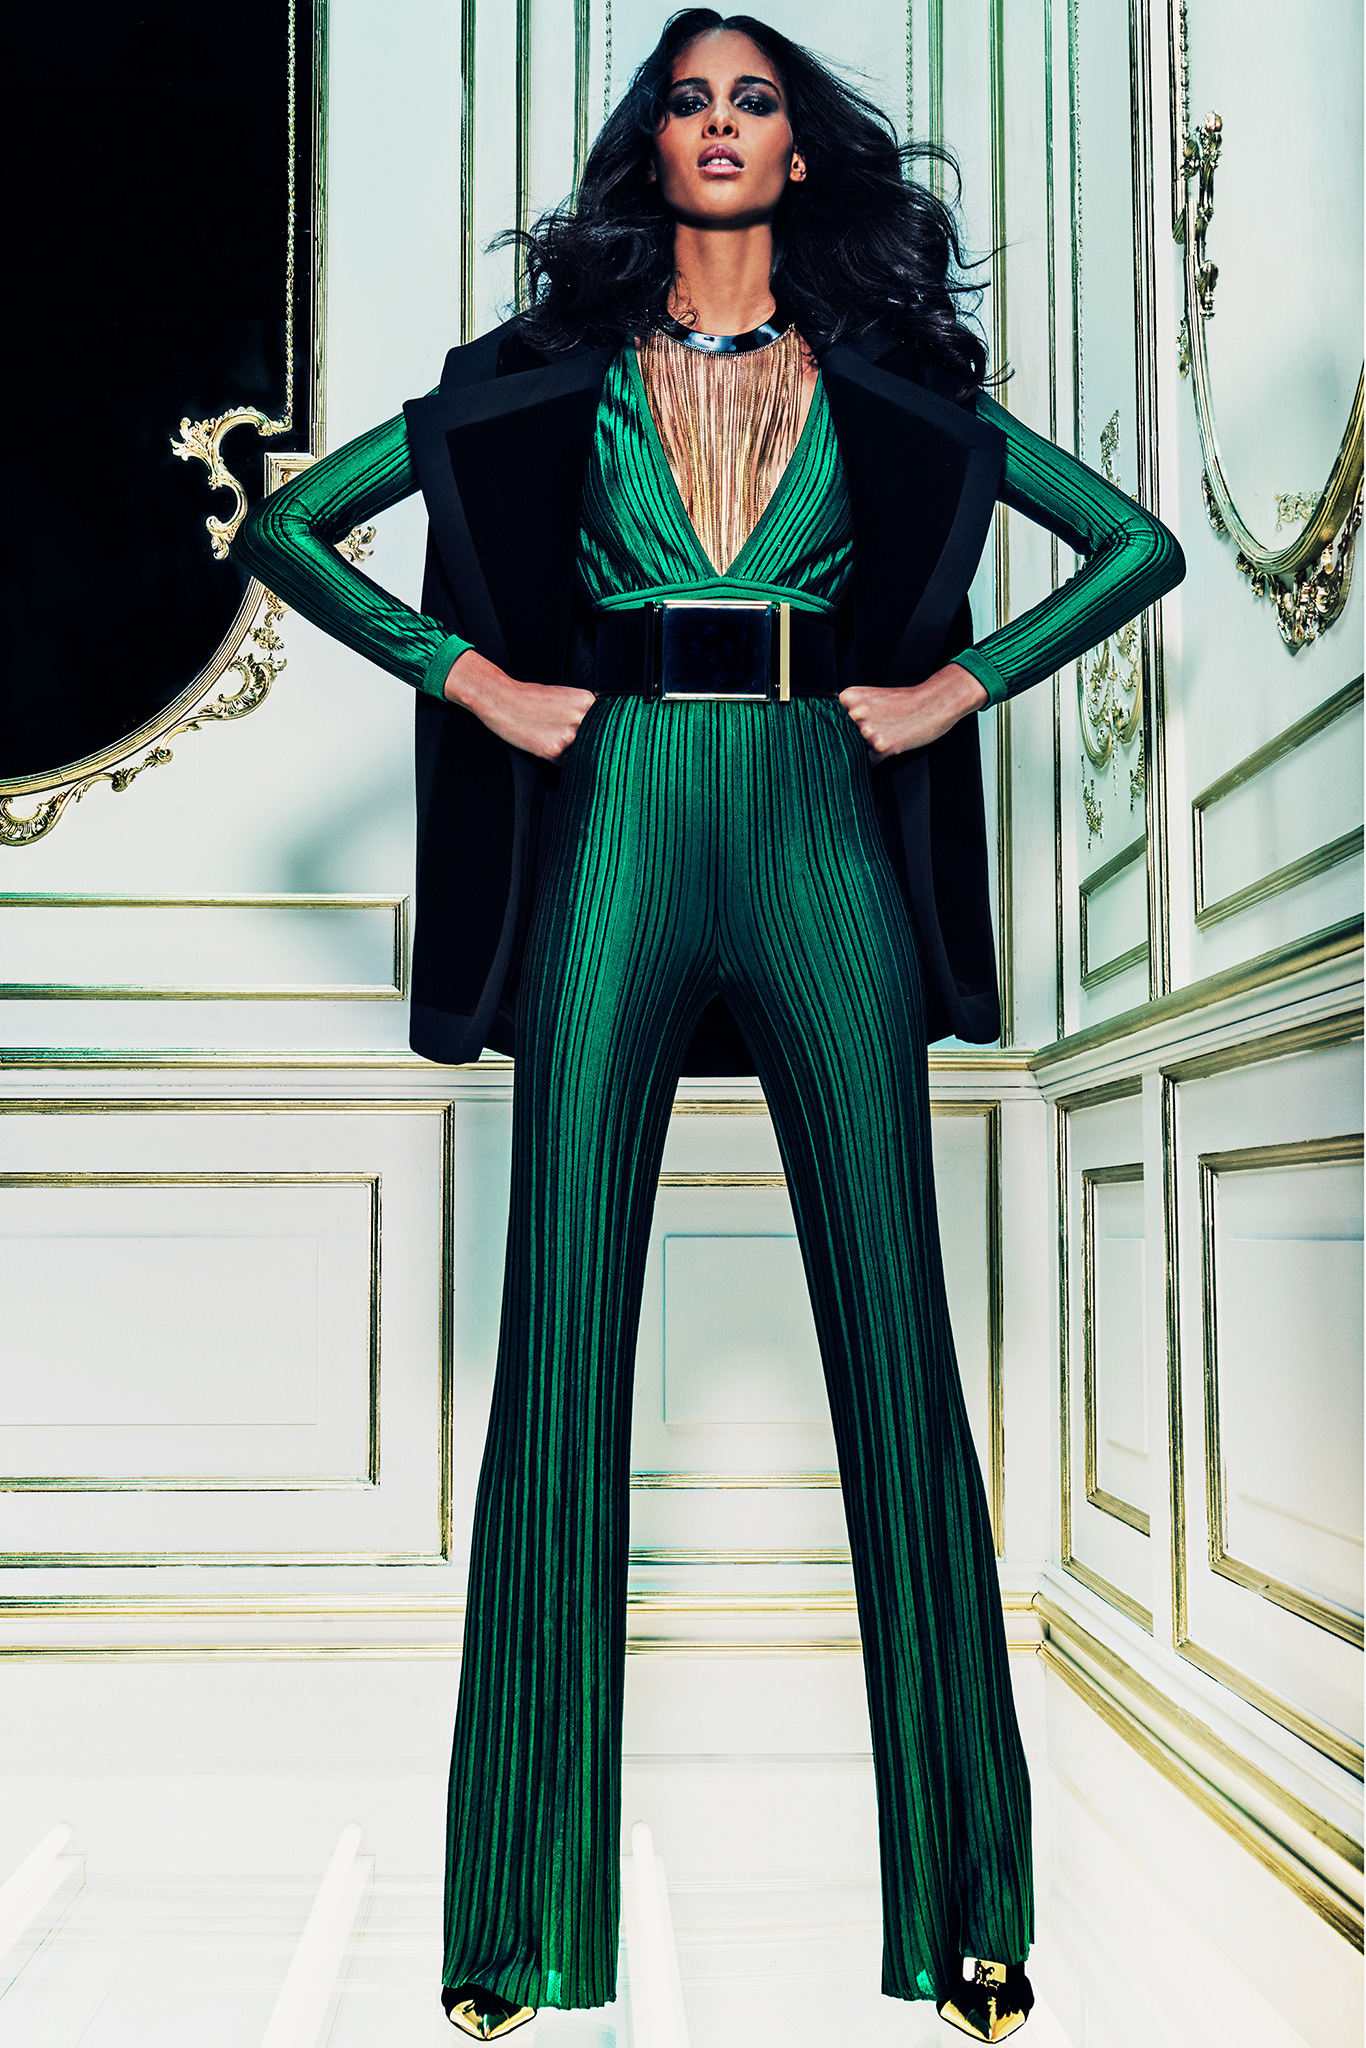 Balmain-Paris- and-H&M- Collaboration- #HMBalmaination-9